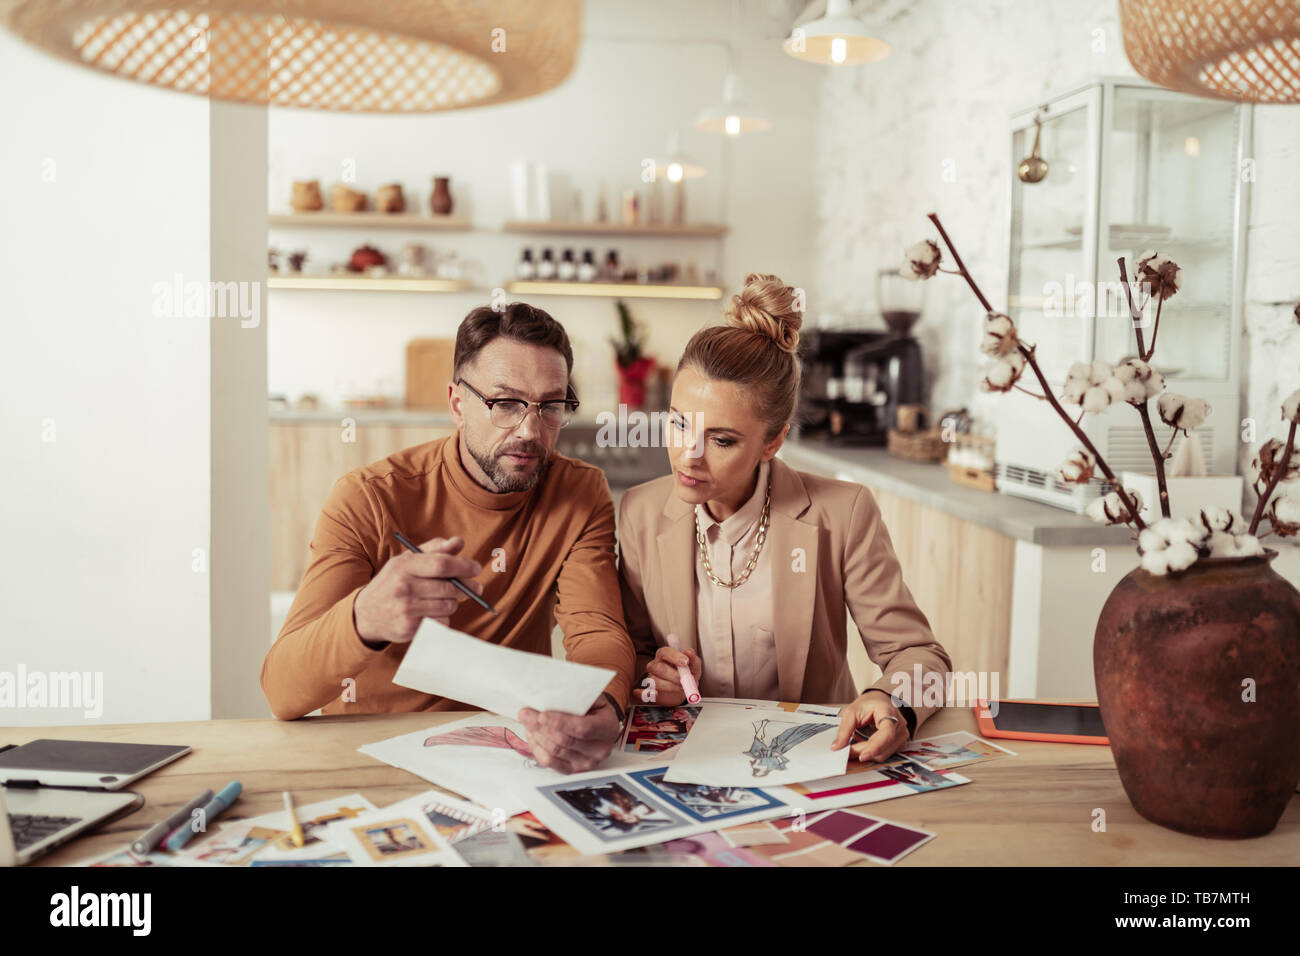 Team Work Creative Fashion Designer Discussing Sketches Of His New Collection With His Assistant Stock Photo Alamy